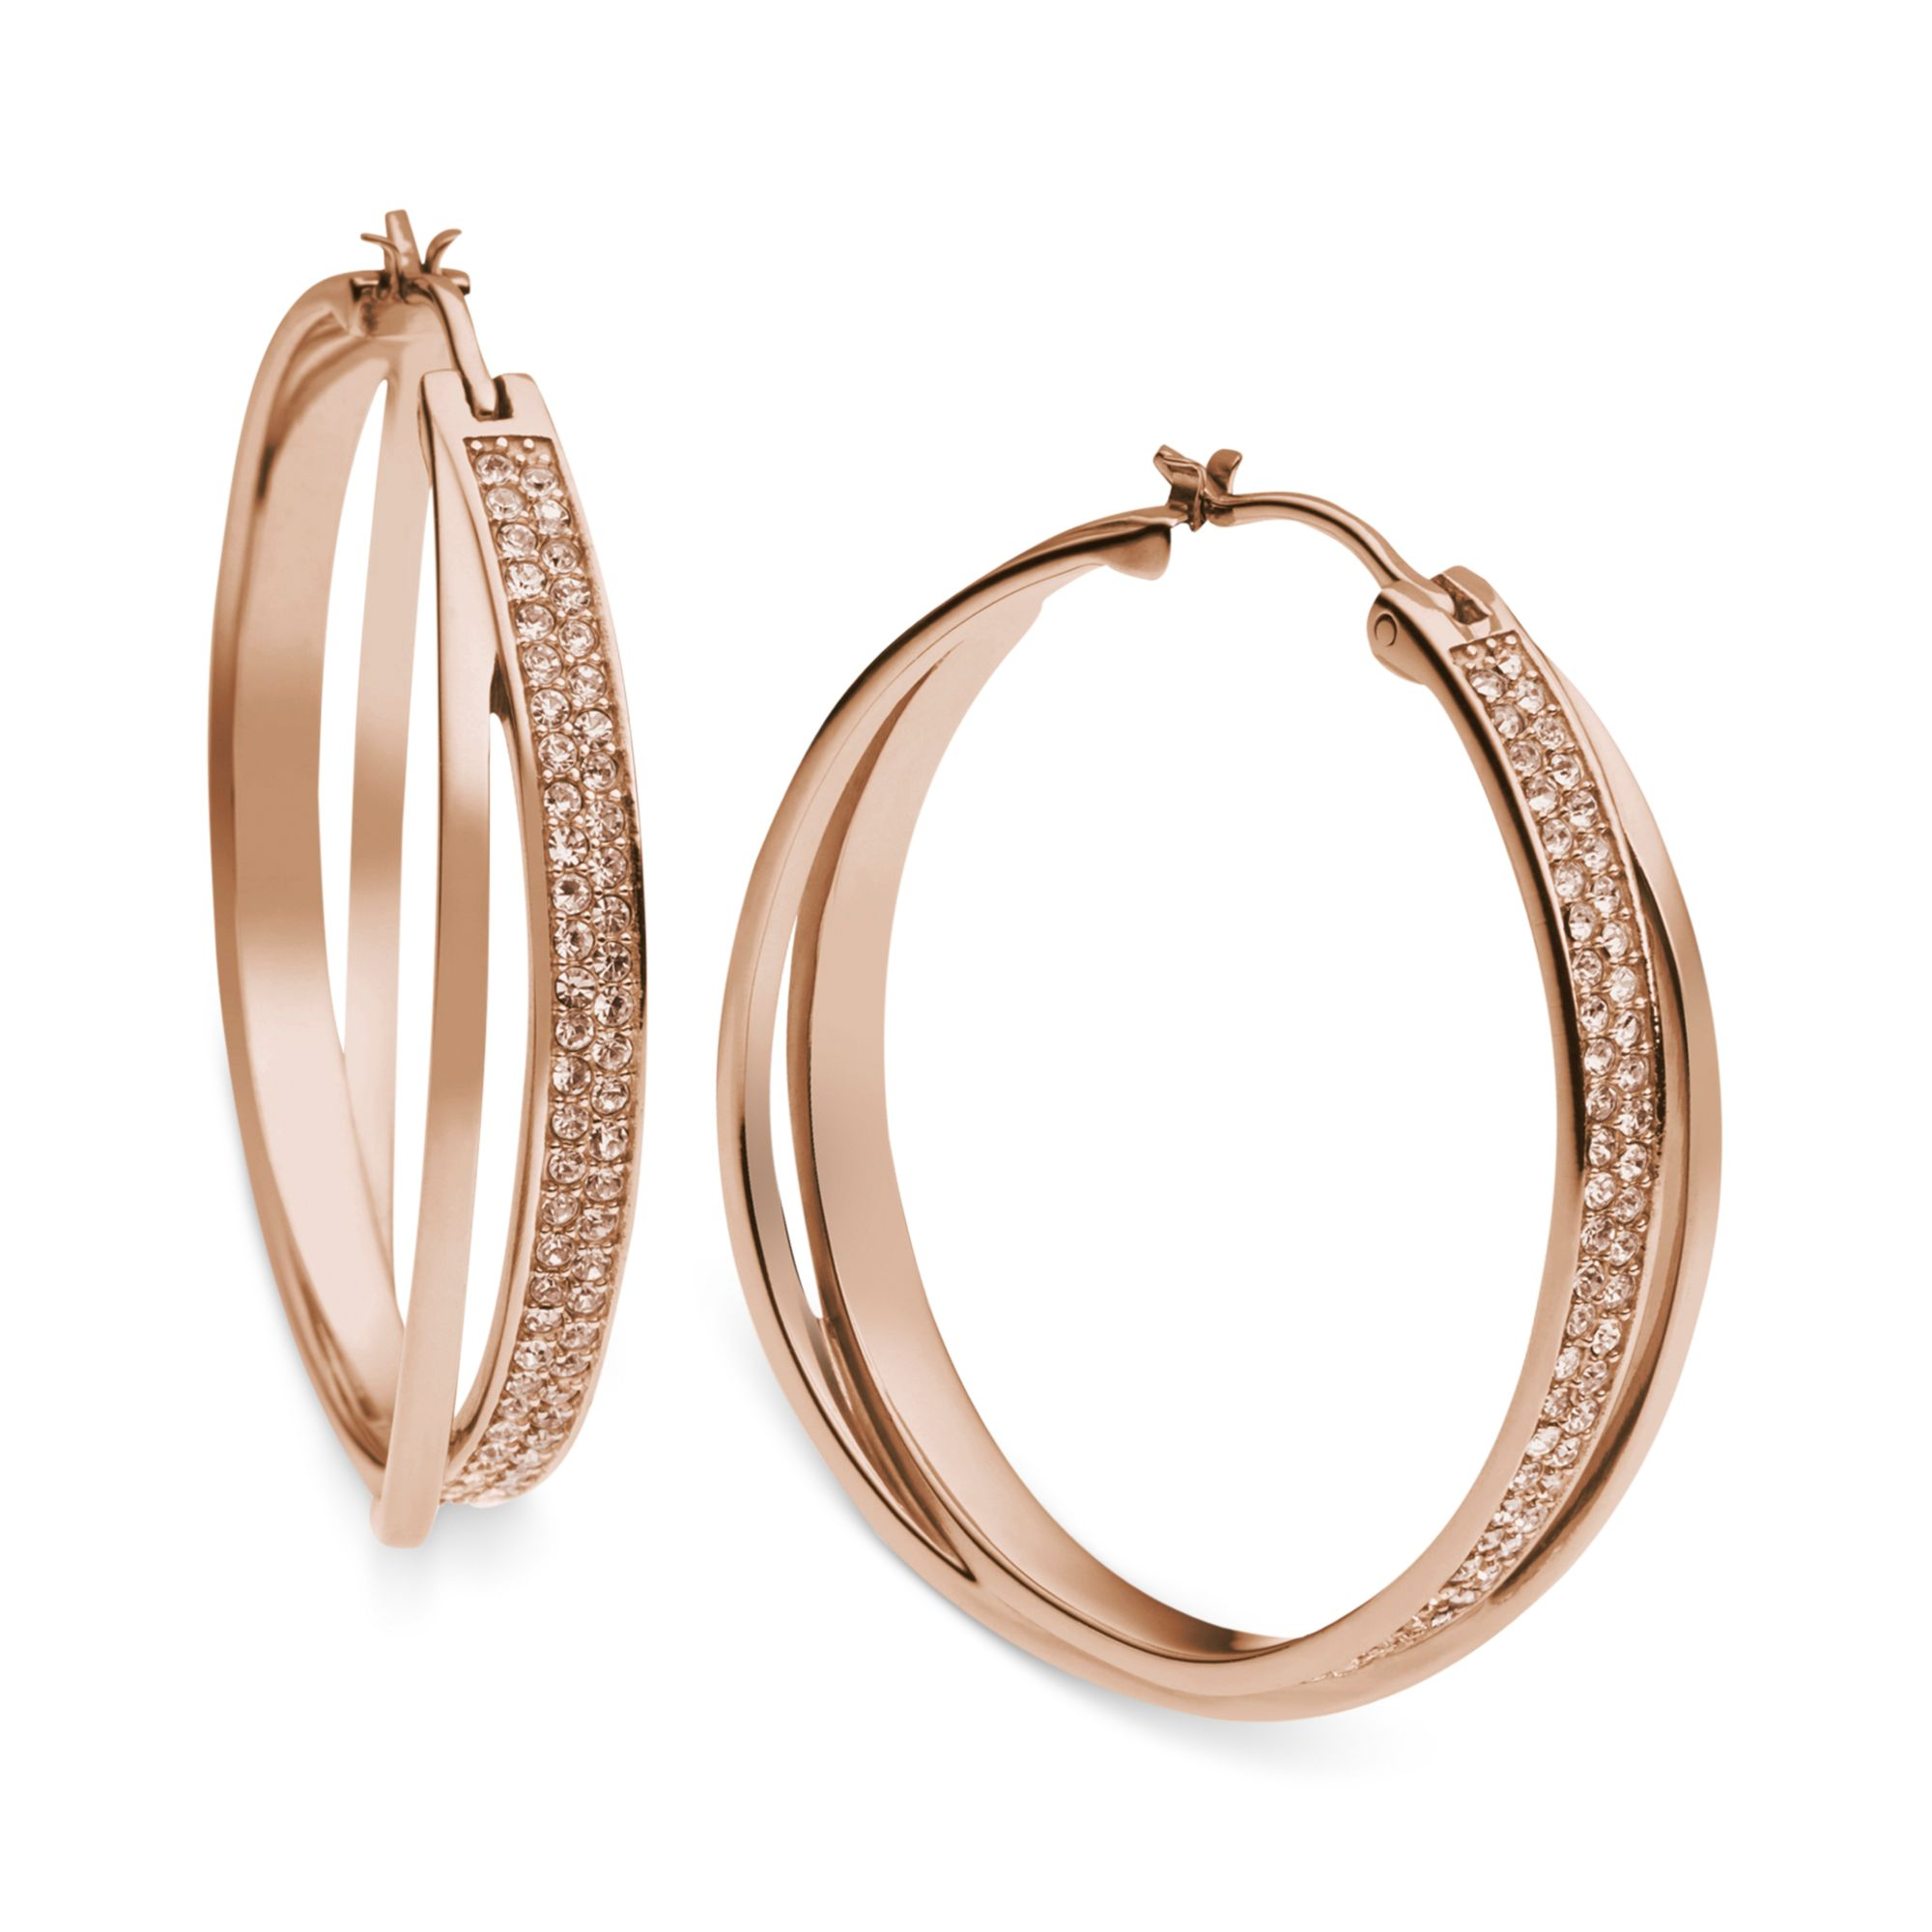 d5d76af212da28 Michael Kors Rose Gold-tone Quartz Pave Interlocking Hoop Earrings ...